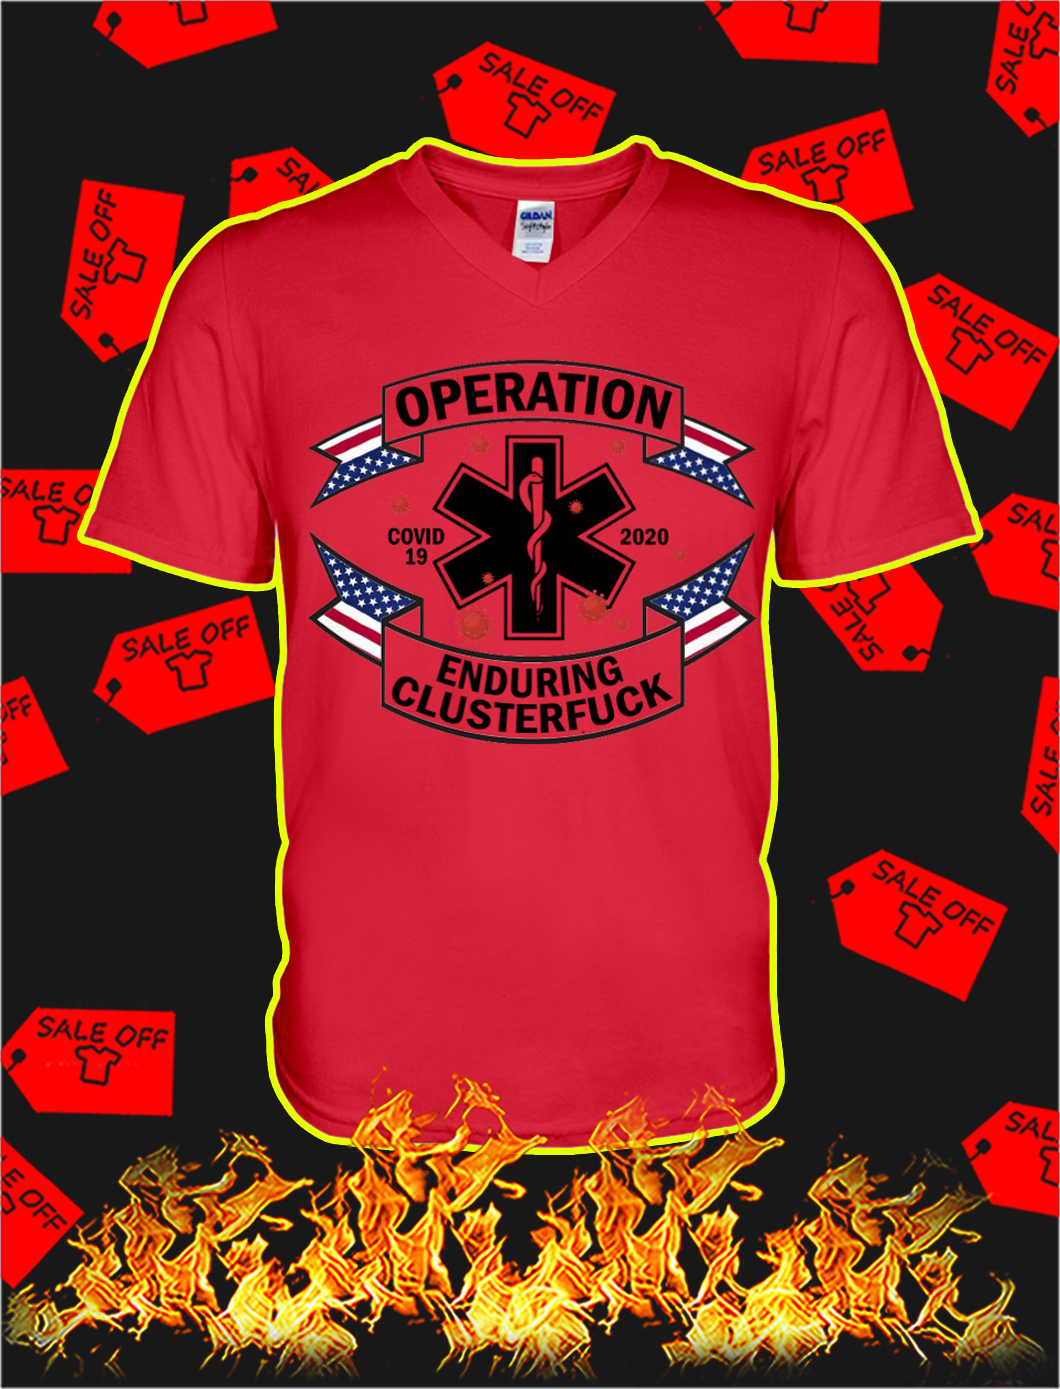 Operation enduring clusterfuck covid 19 2020 v-neck